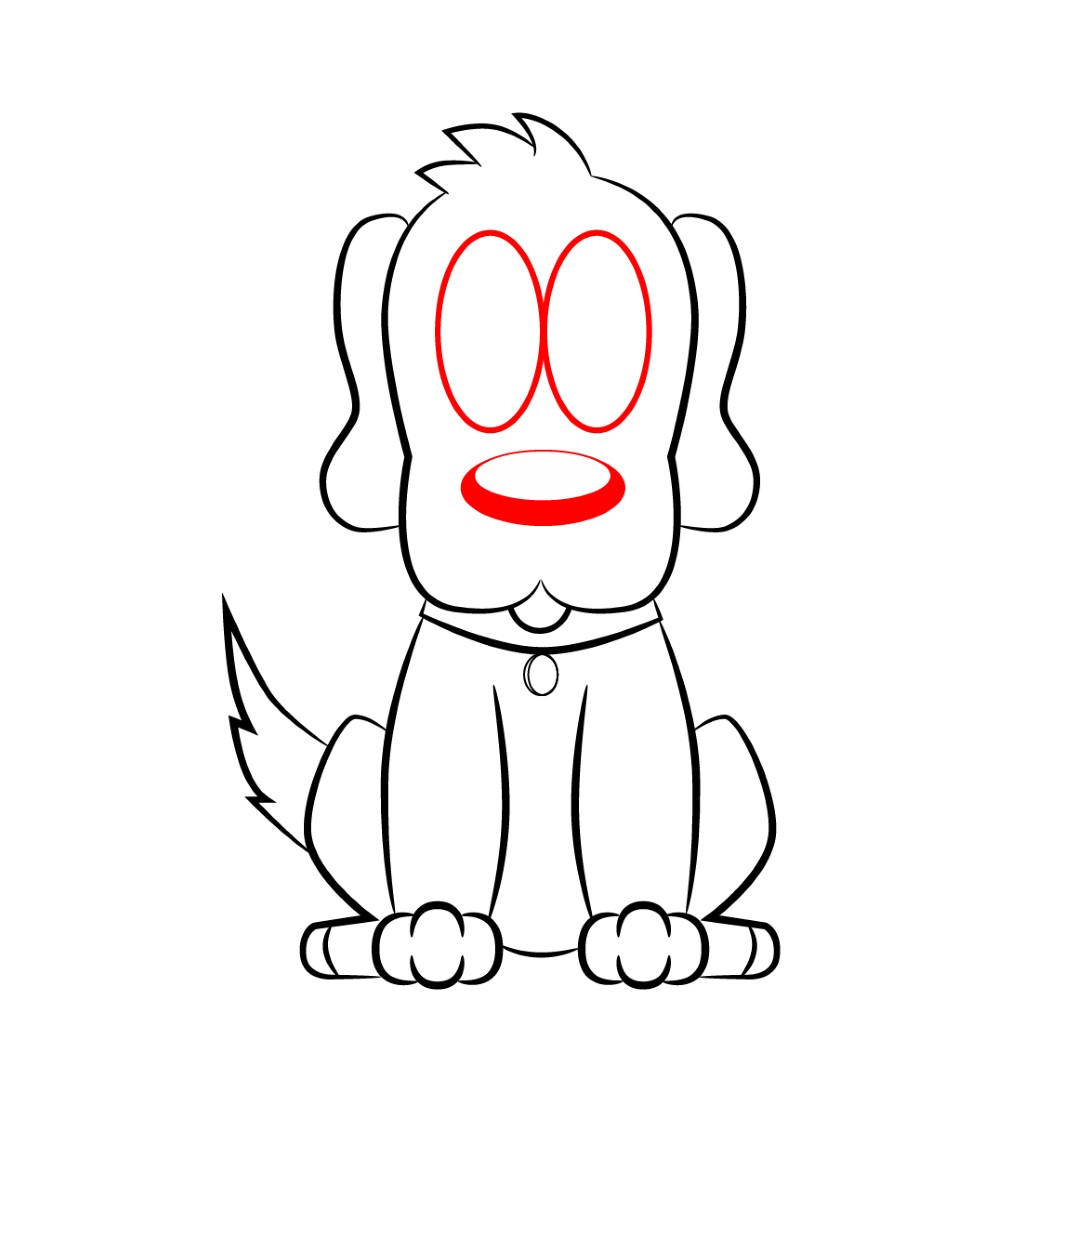 How to draw a cartoon dog - photo#6